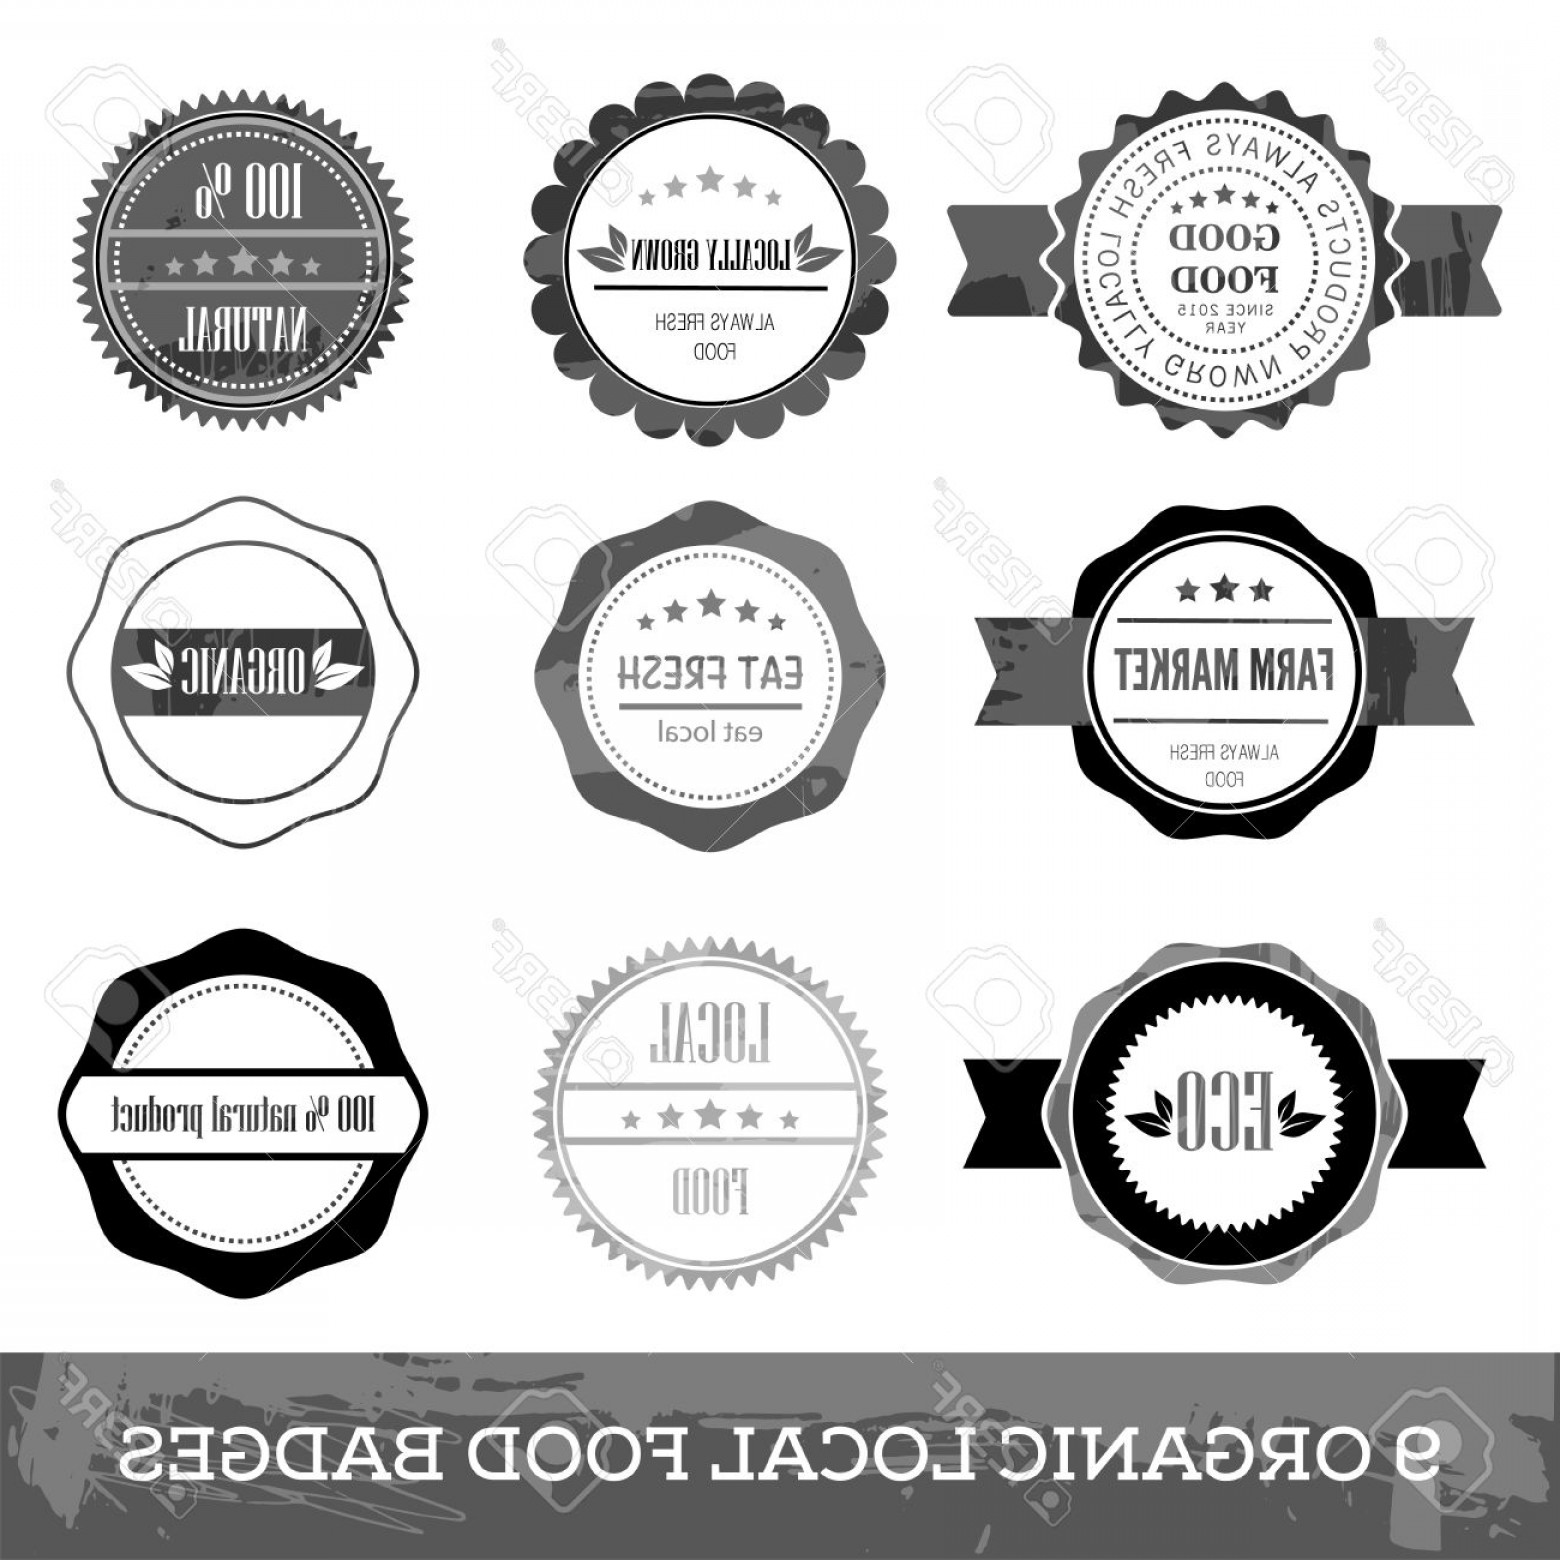 Free Vector Hipster: Photostock Vector Organic Fresh Local Food Hipster Simple Circle Badge Flat Design